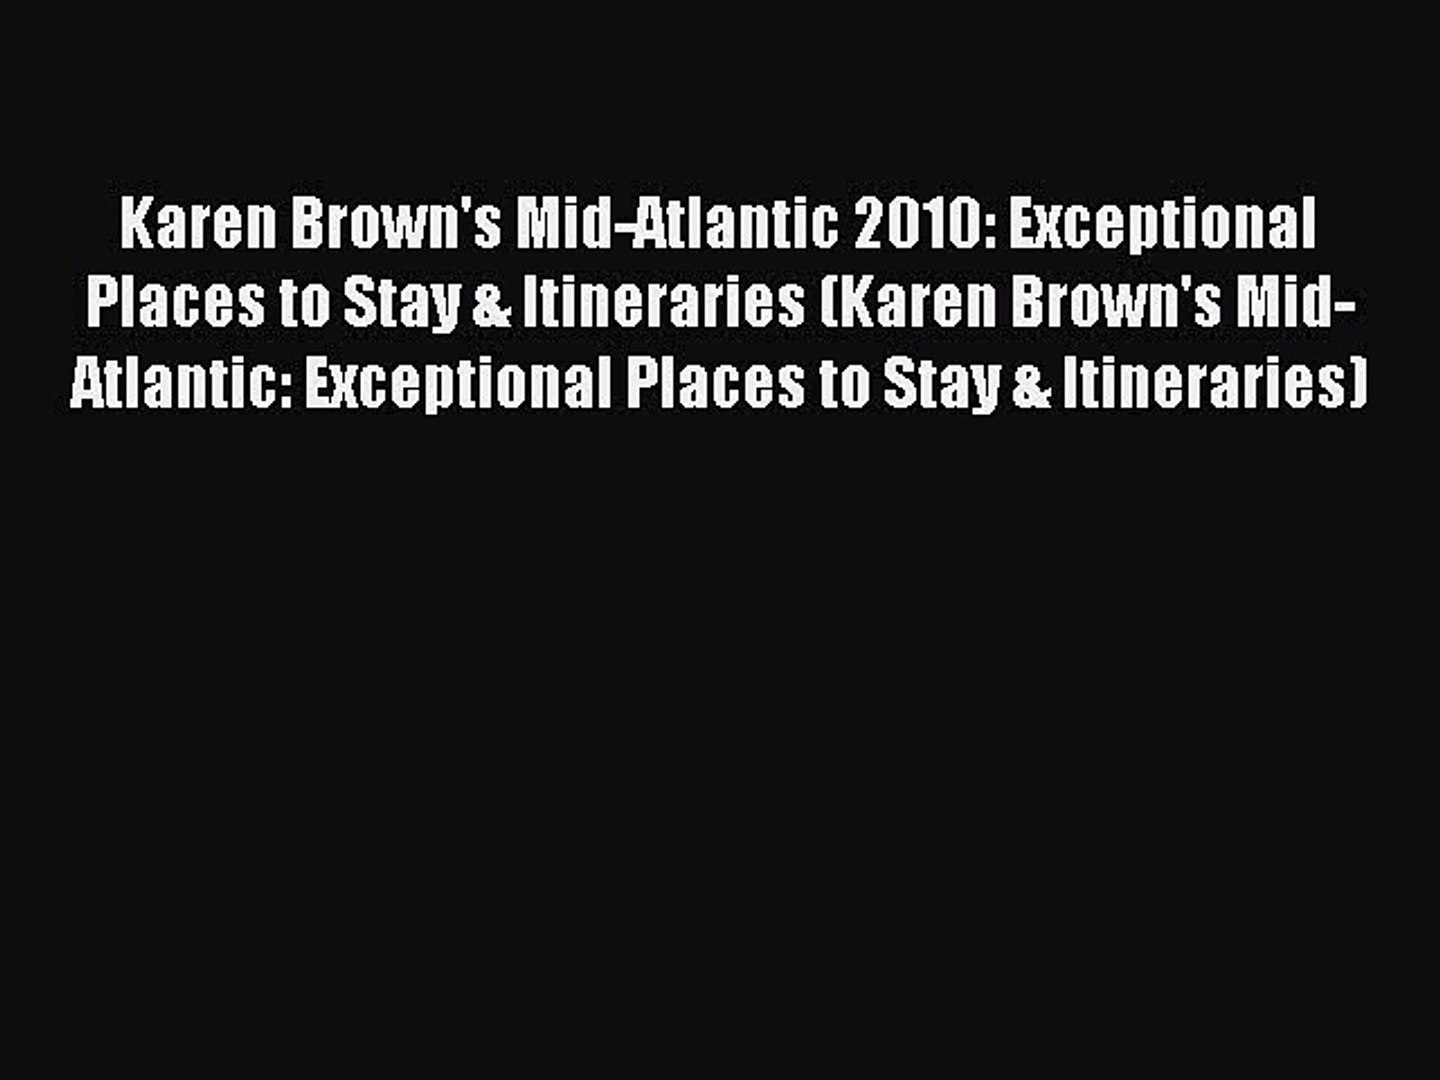 Karen Brown's Mid-Atlantic 2010: Exceptional Places to Stay & Itineraries (Karen Brown'